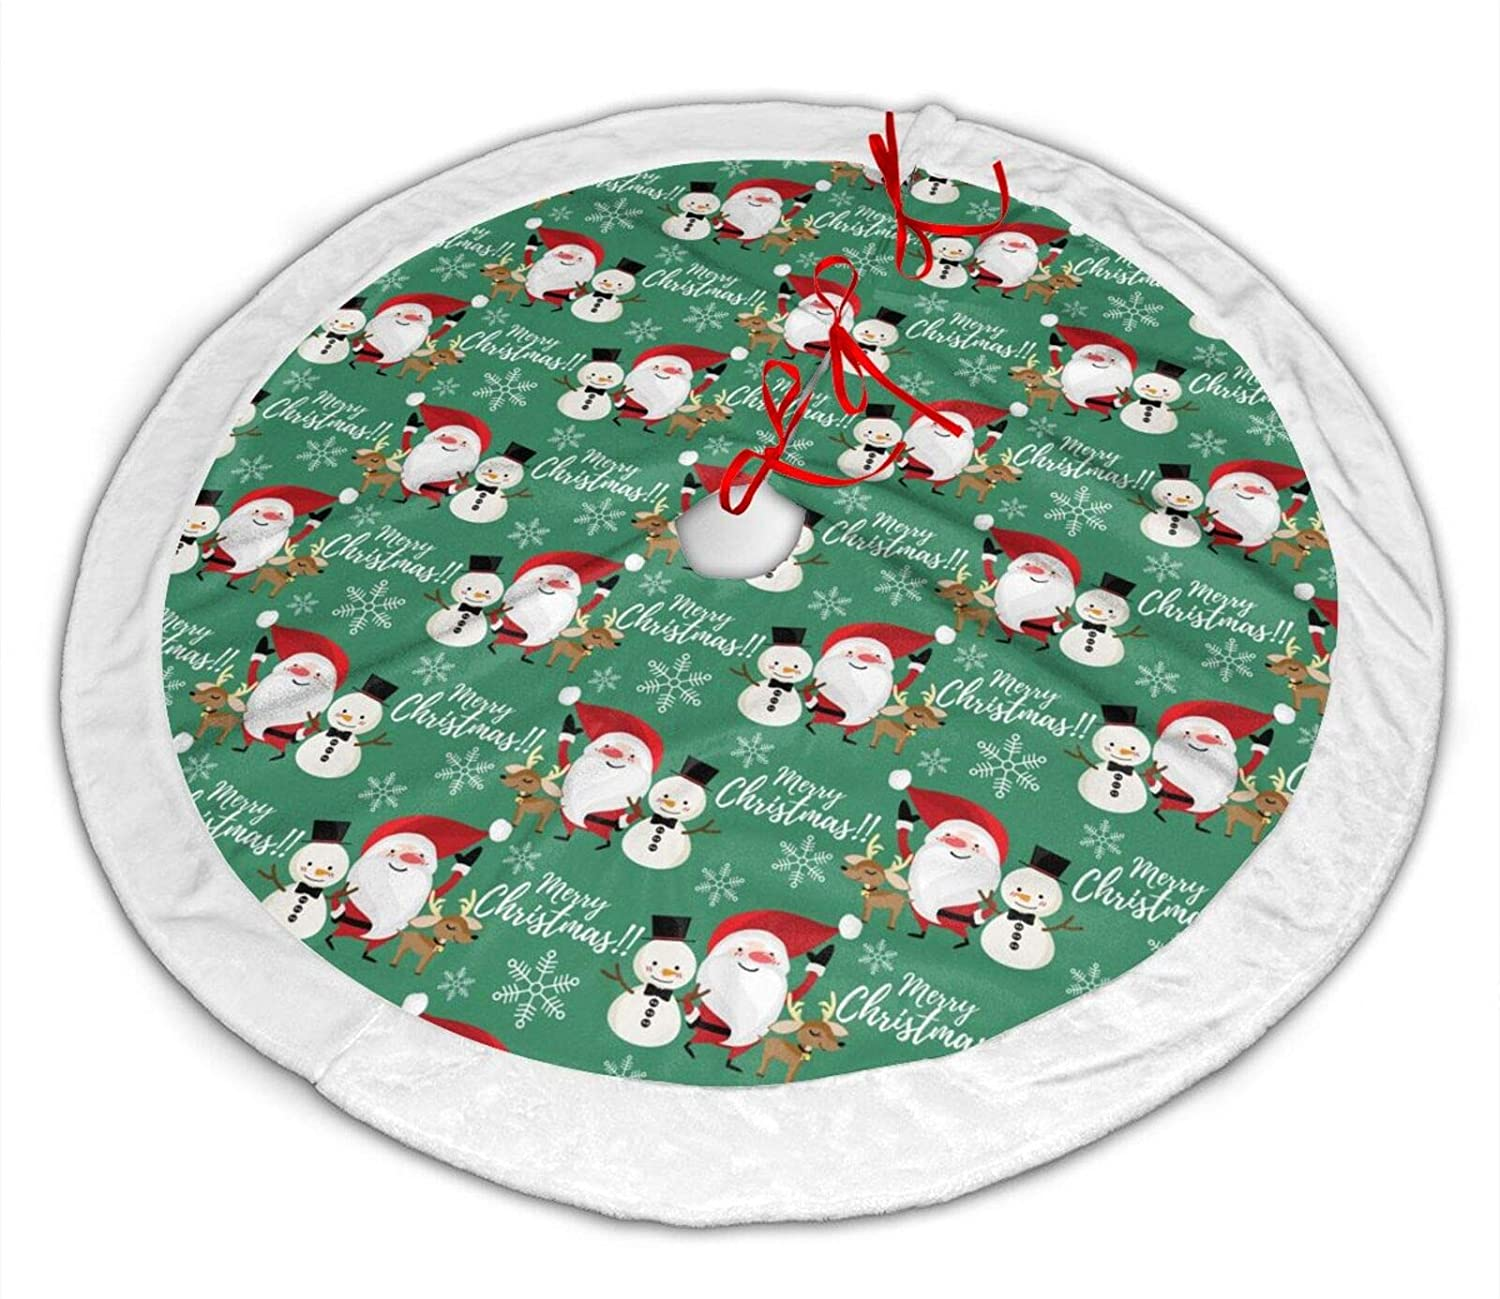 NYF Santa Claus Elk Snowman Snowflake Green Christmas Tree Skirt with White Plush Fabric Trim Round Carpet Decoration Xmas Holiday Party Home Decor Mat Festive Ornament 36